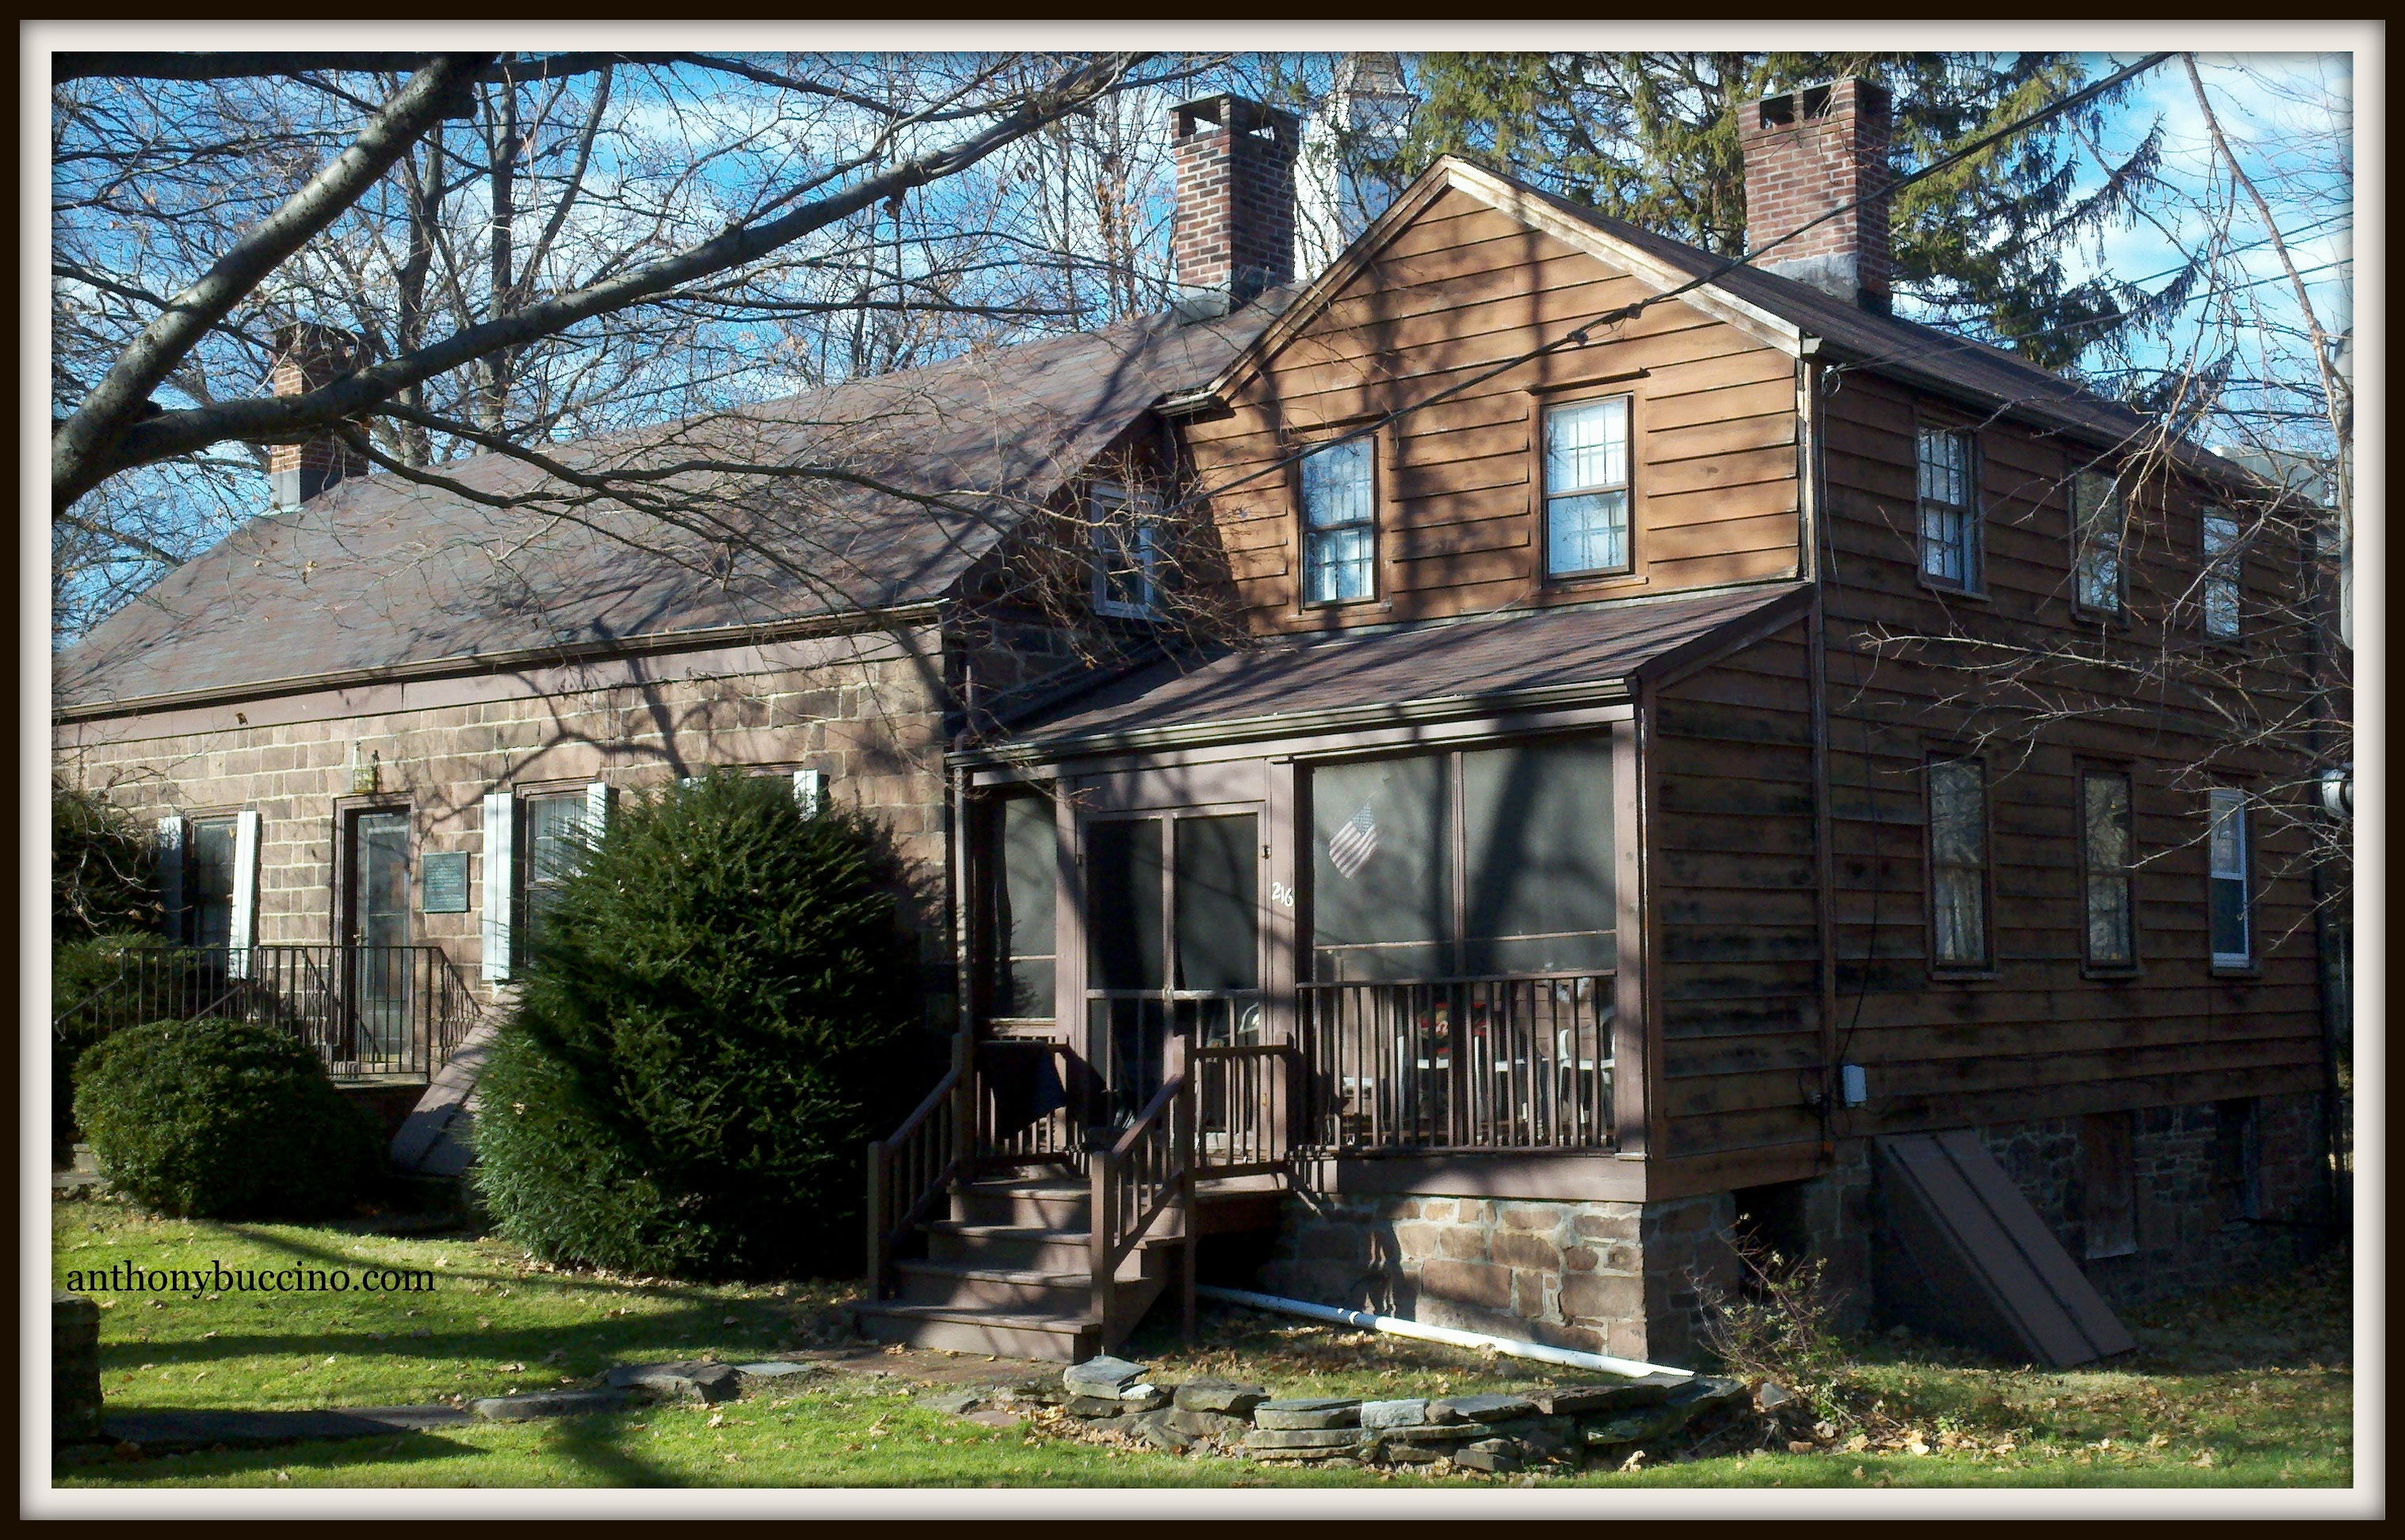 Vreeland House, Chestnut Street, Nutley NJ by Anthony Buccino, copyright 2012, all rights reserved.